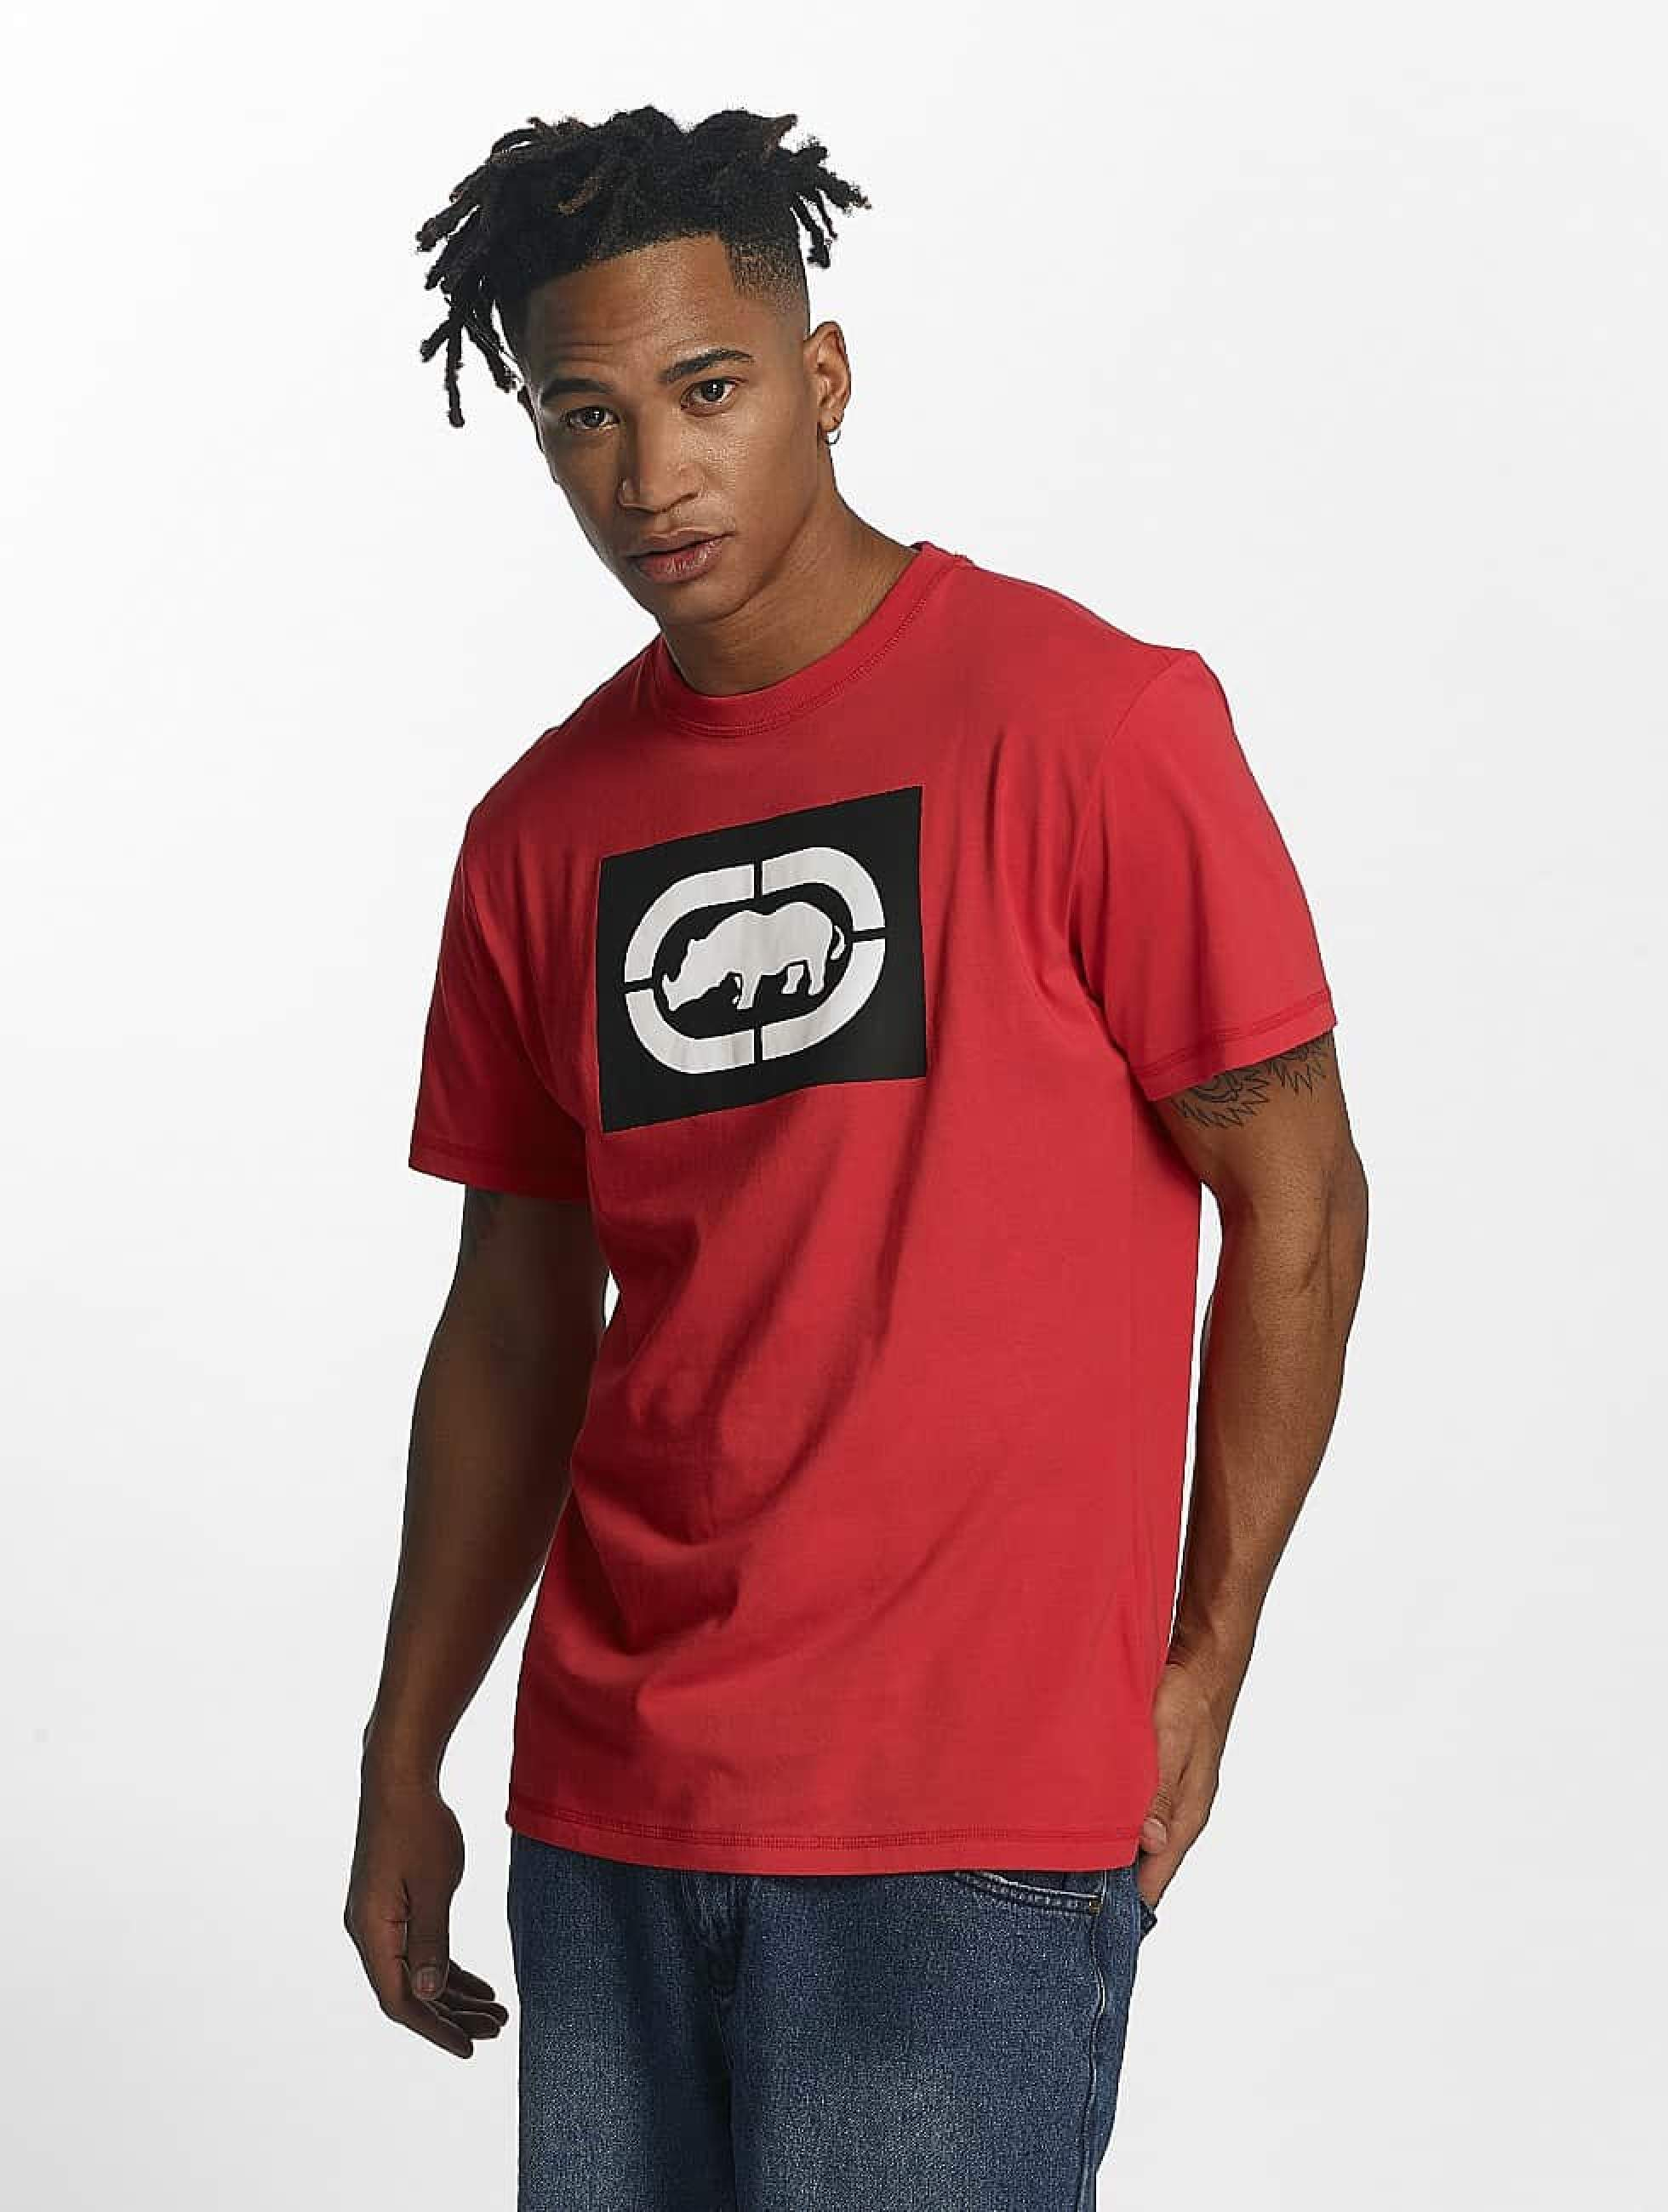 Ecko Unltd. / T-Shirt Base in red M